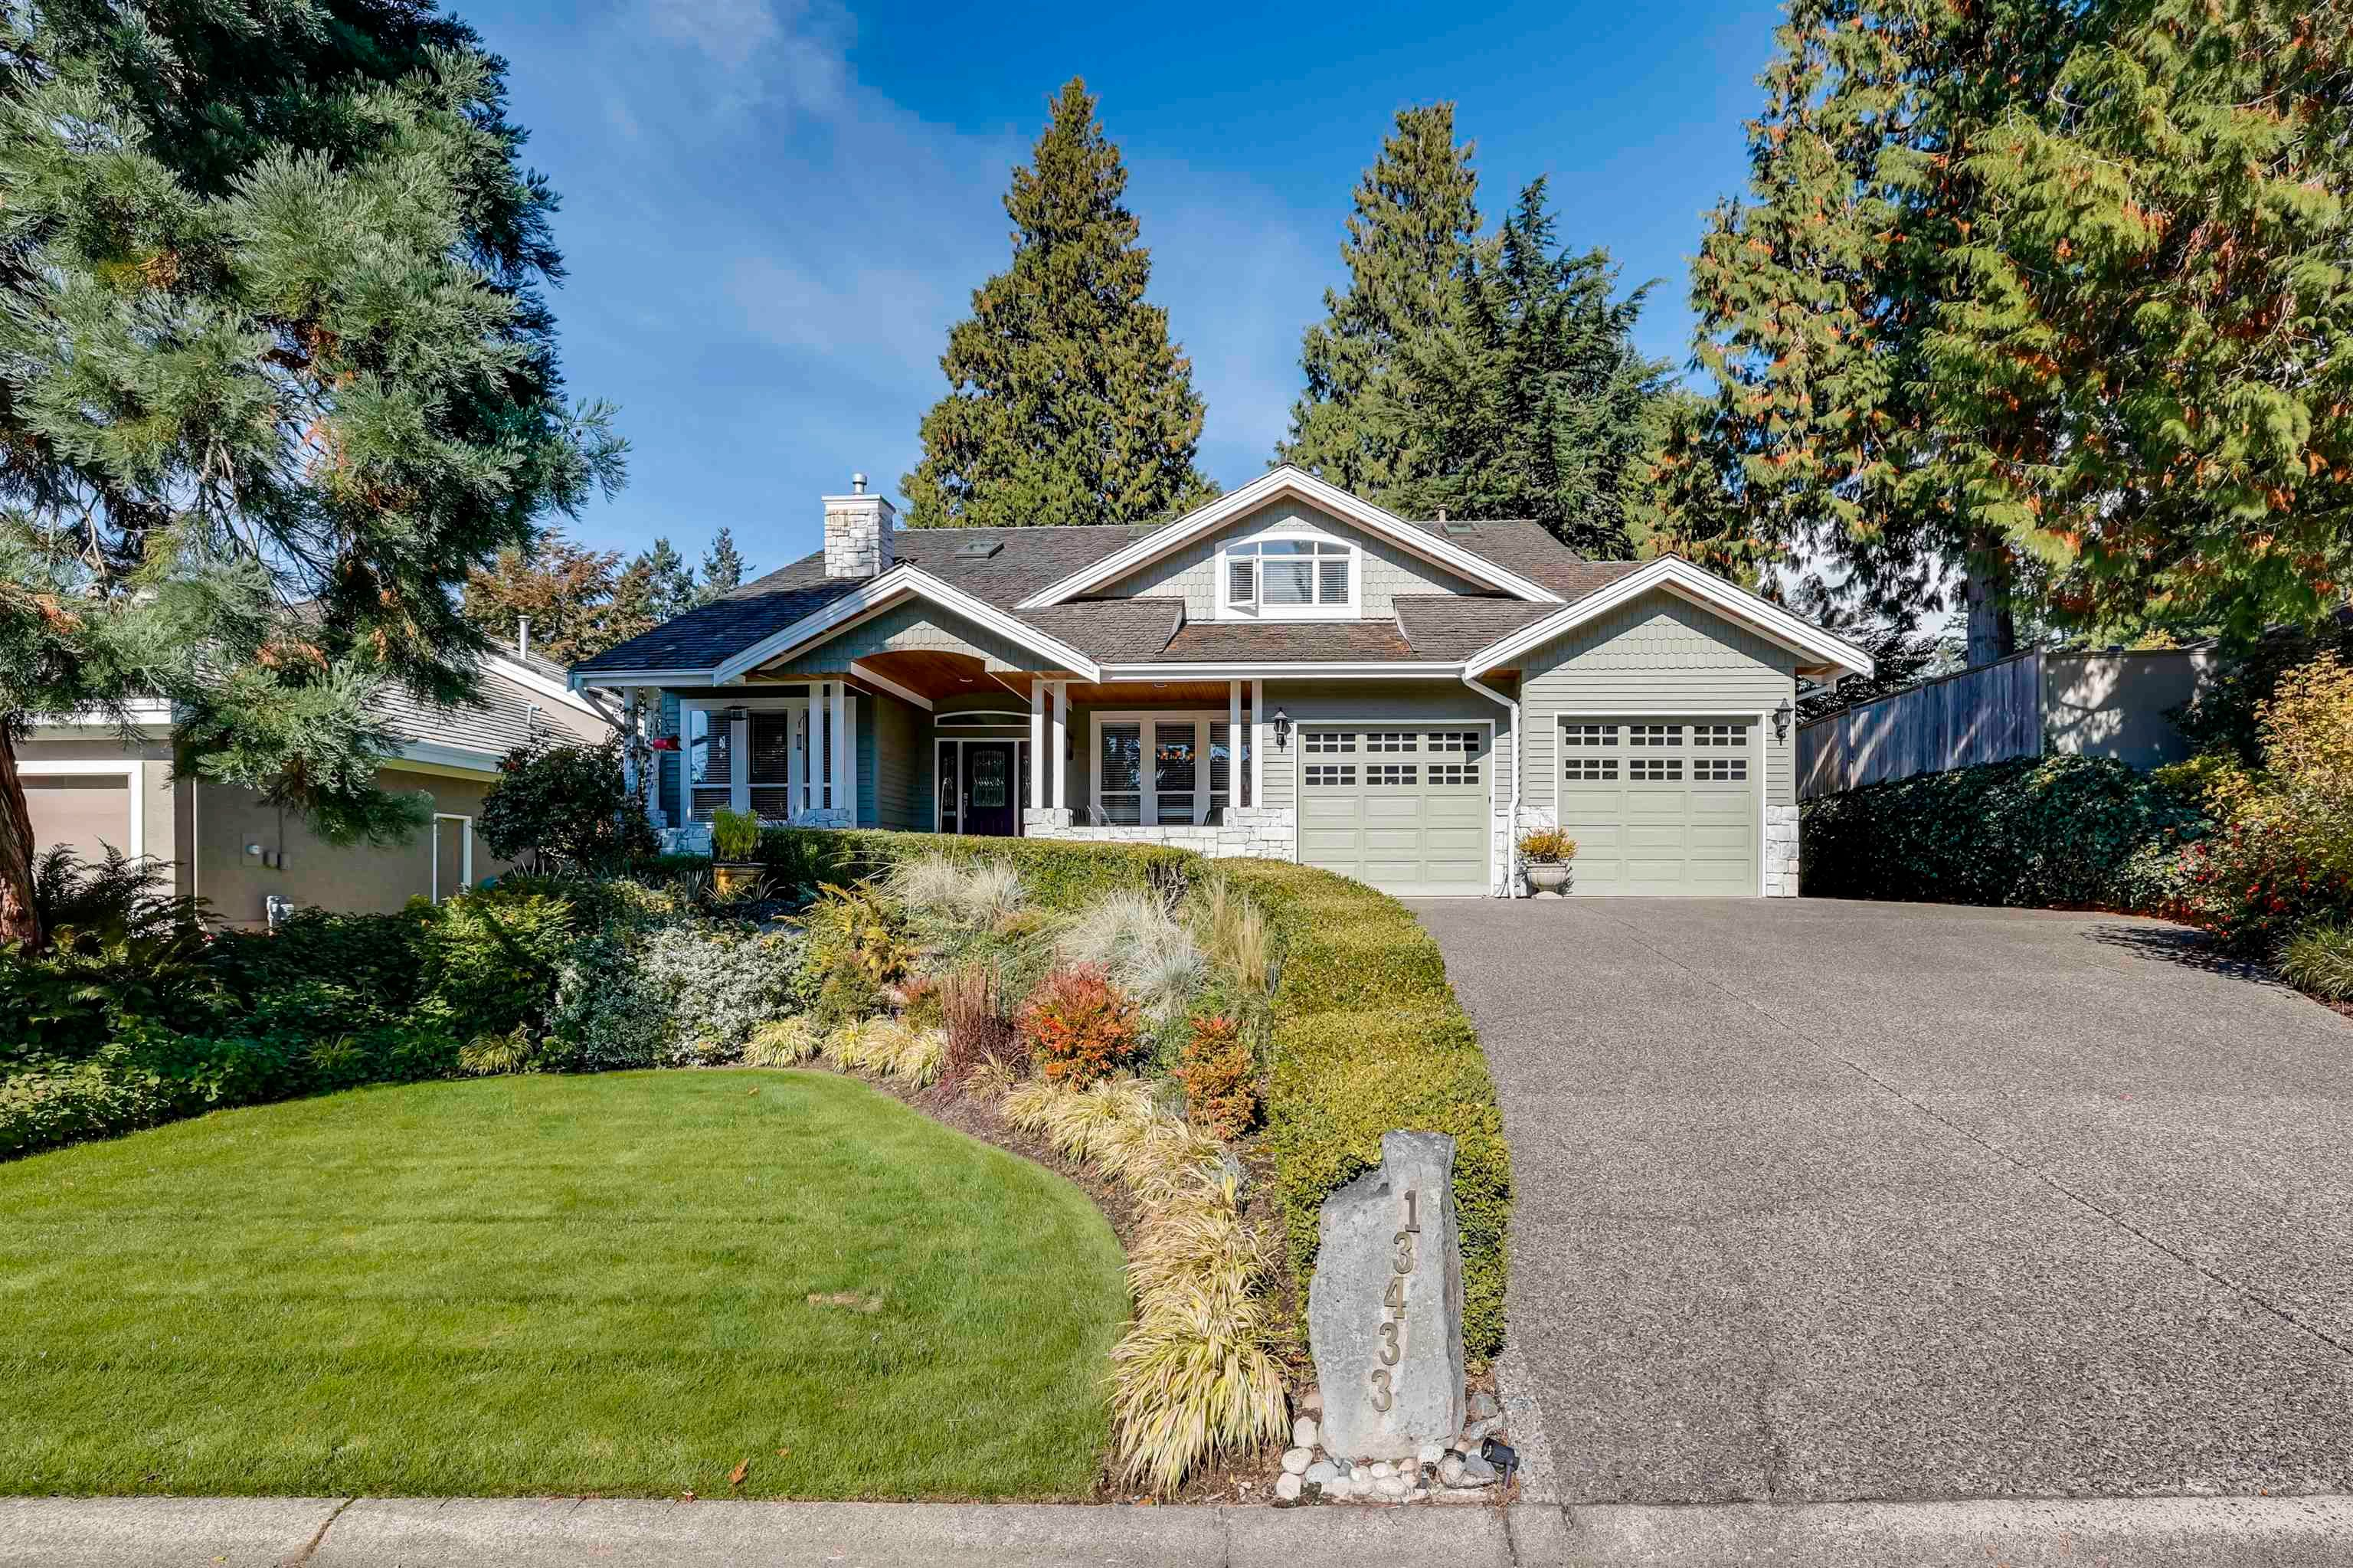 """Main Photo: 13433 16A Avenue in Surrey: Crescent Bch Ocean Pk. House for sale in """"AMBLE GREENE"""" (South Surrey White Rock)  : MLS®# R2625927"""